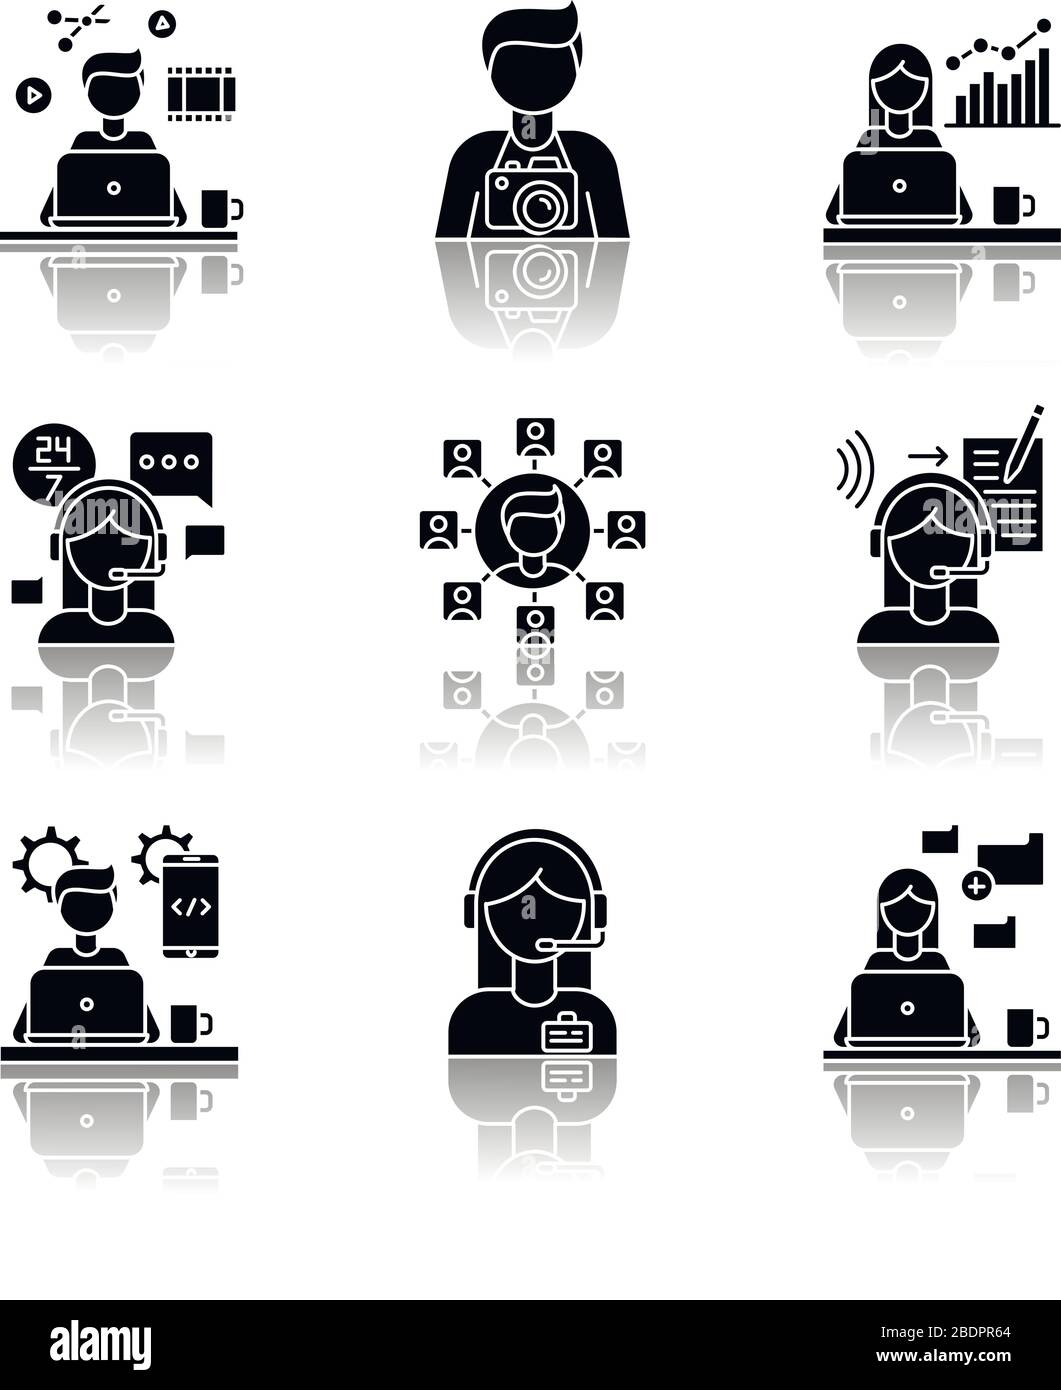 Remote Jobs Drop Shadow Black Glyph Icons Set Technical And Admin Support Seo And Marketing Photography And Video Editing Data Entry Jobs Stock Vector Image Art Alamy